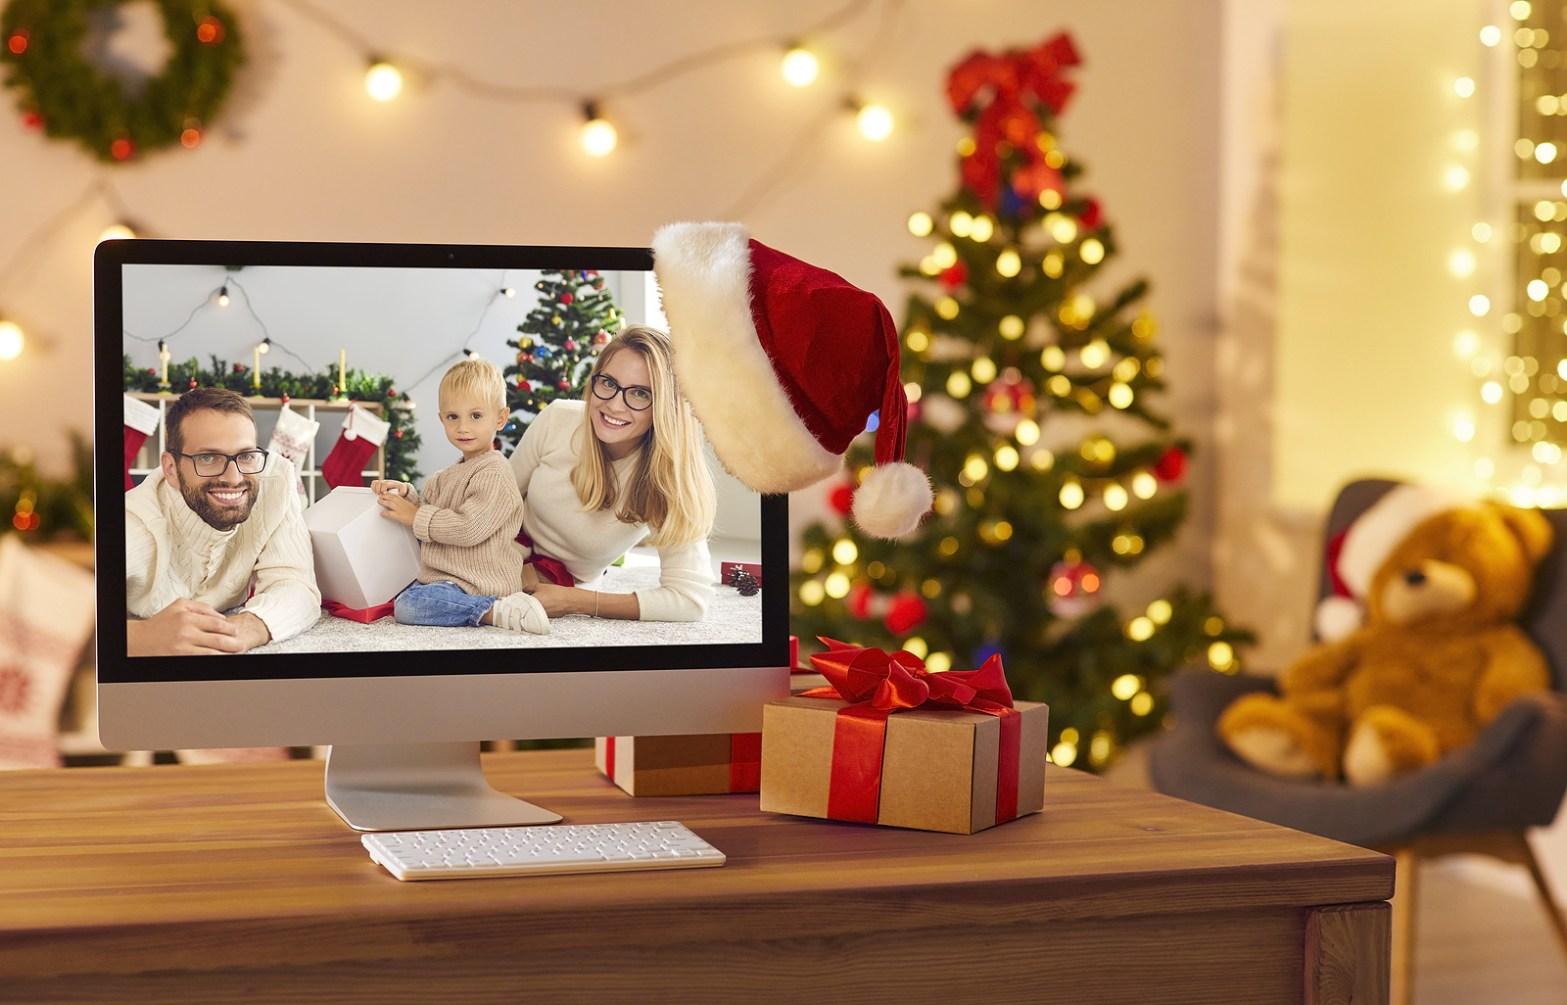 Holiday scene with a family on a computer. There is also a christmas tree, a santa hat hanging off the screen, and a nearby present resting on the desk. Moxie Family Therapy offers emdr therapy, counseling for women in orange county, family therapy, and more. Contact us today for the support you deserve!